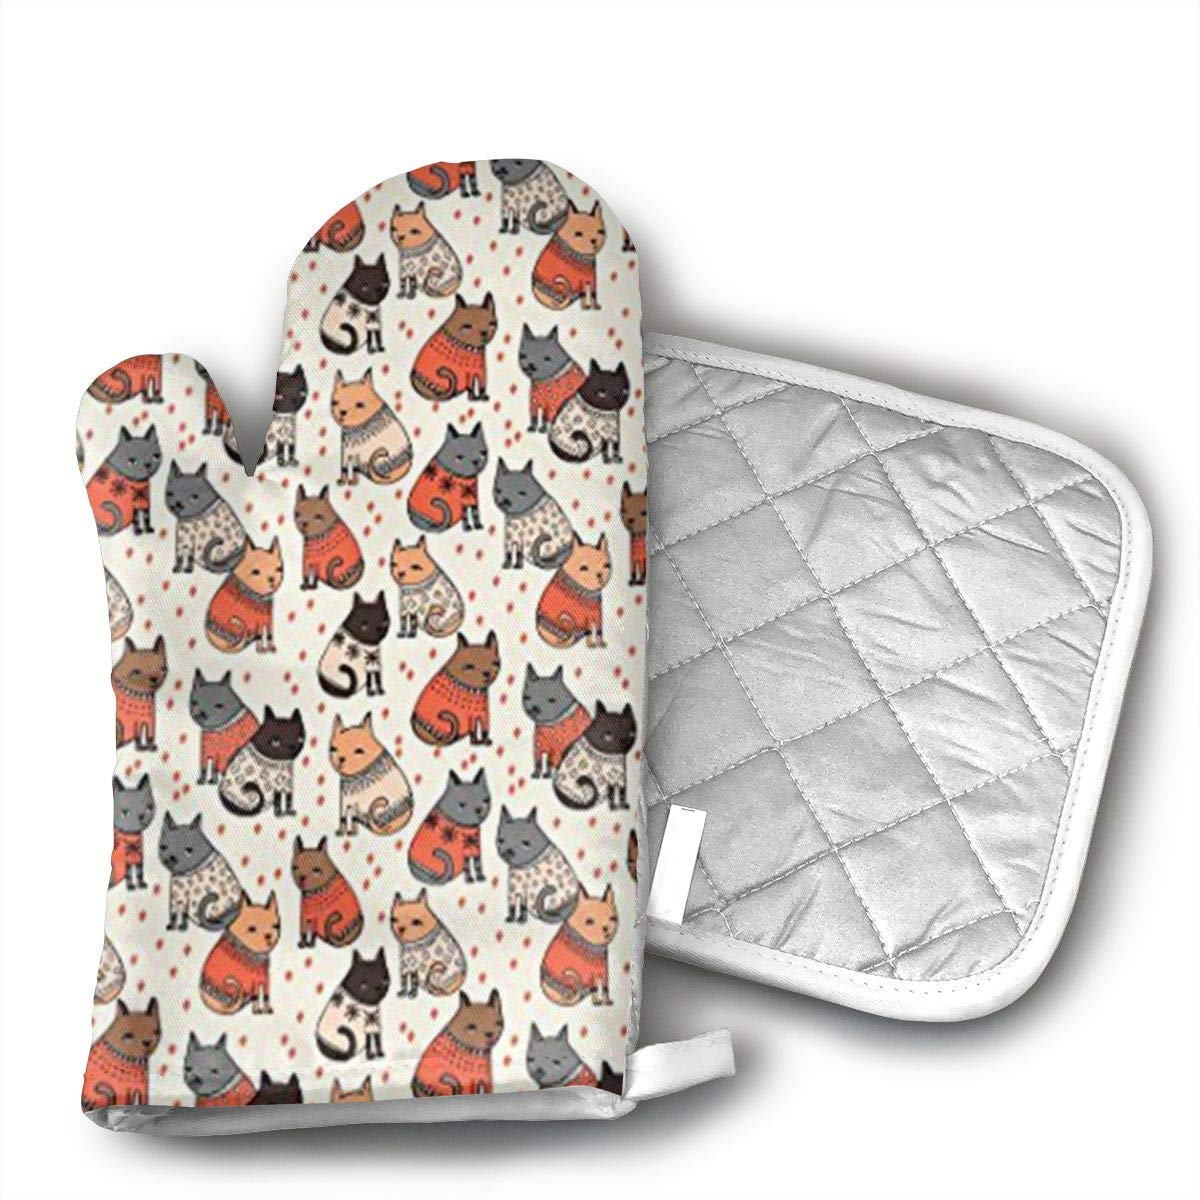 WAWAJD Holiday Christmas Cats Wearing Sweaters Oven Mitts with Thermal Pads for Cooking, Baking, BBQ, Non-Slip Kitchen